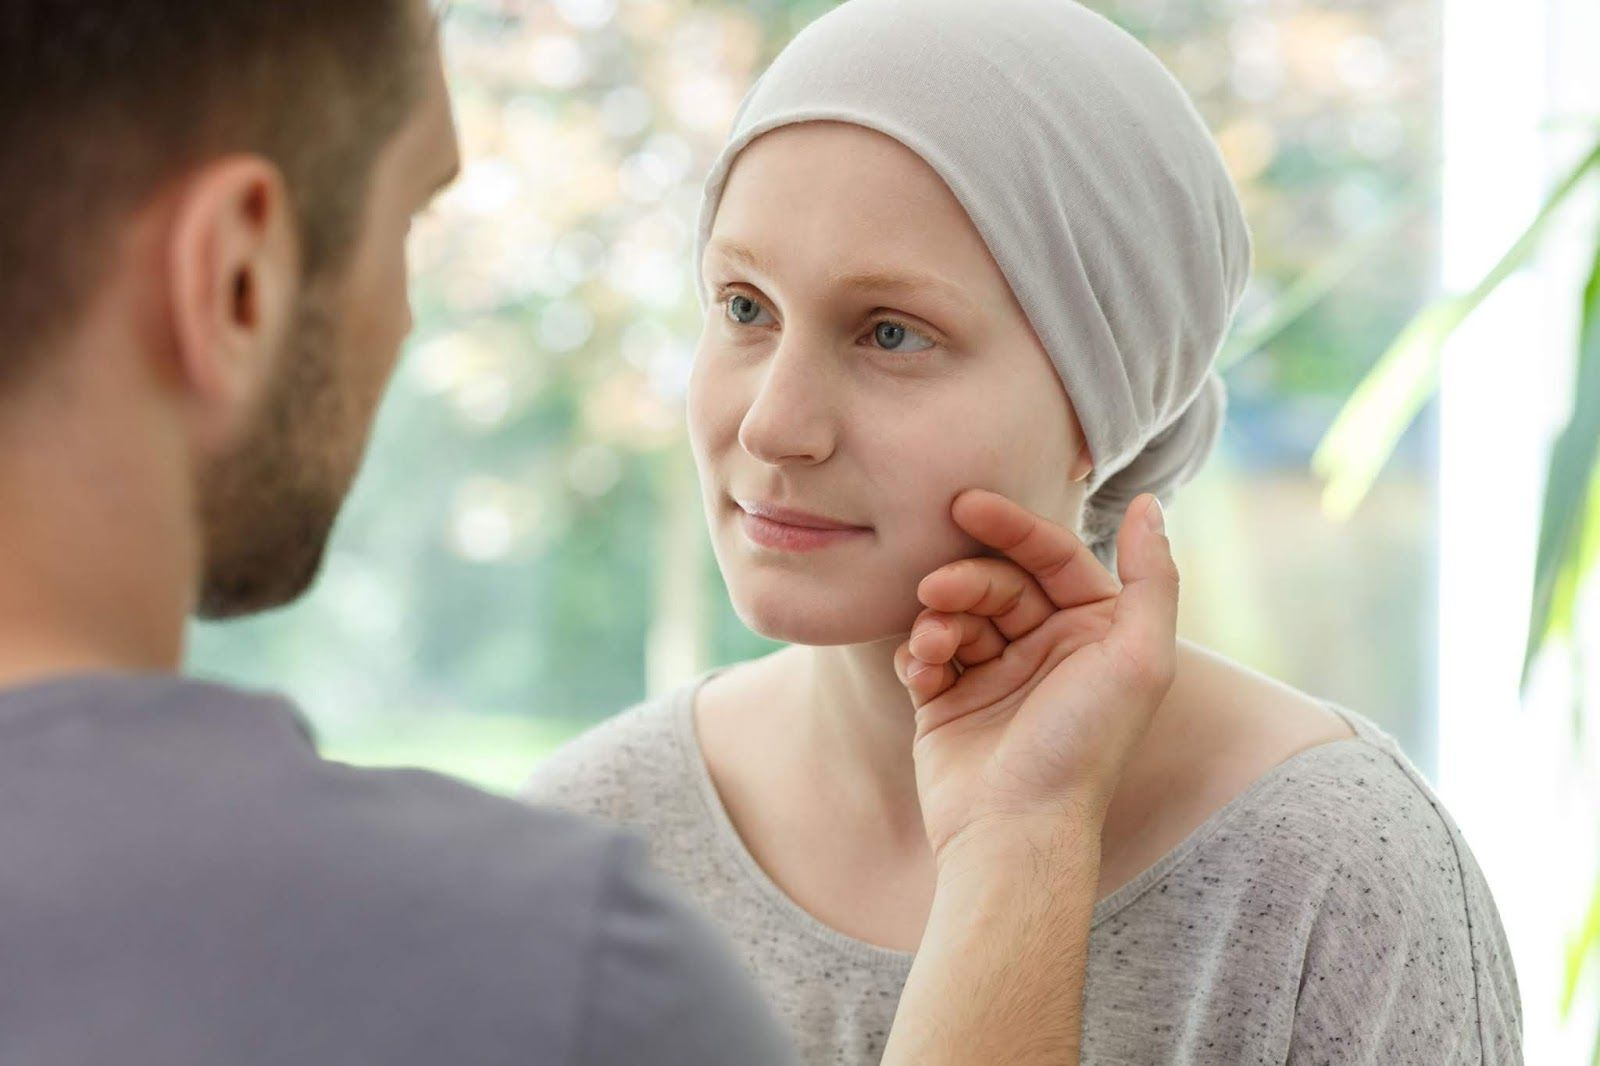 Can Excessive Hair Loss Be a Sign of Cancer?